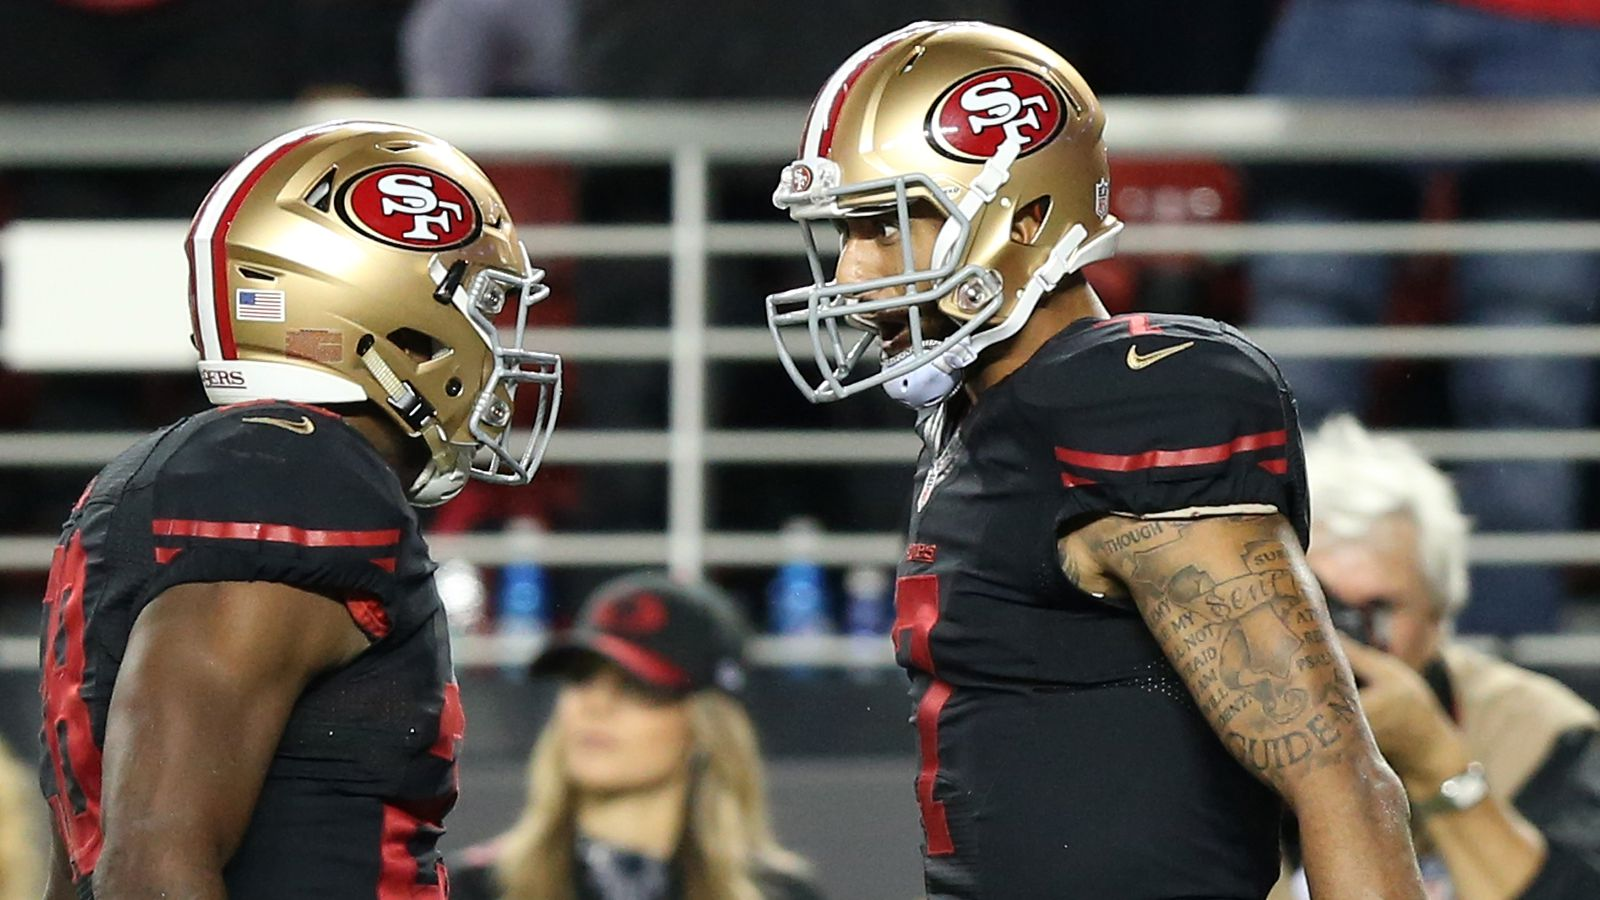 49ers Vs Steelers 2015 Live Stream Game Time Tv